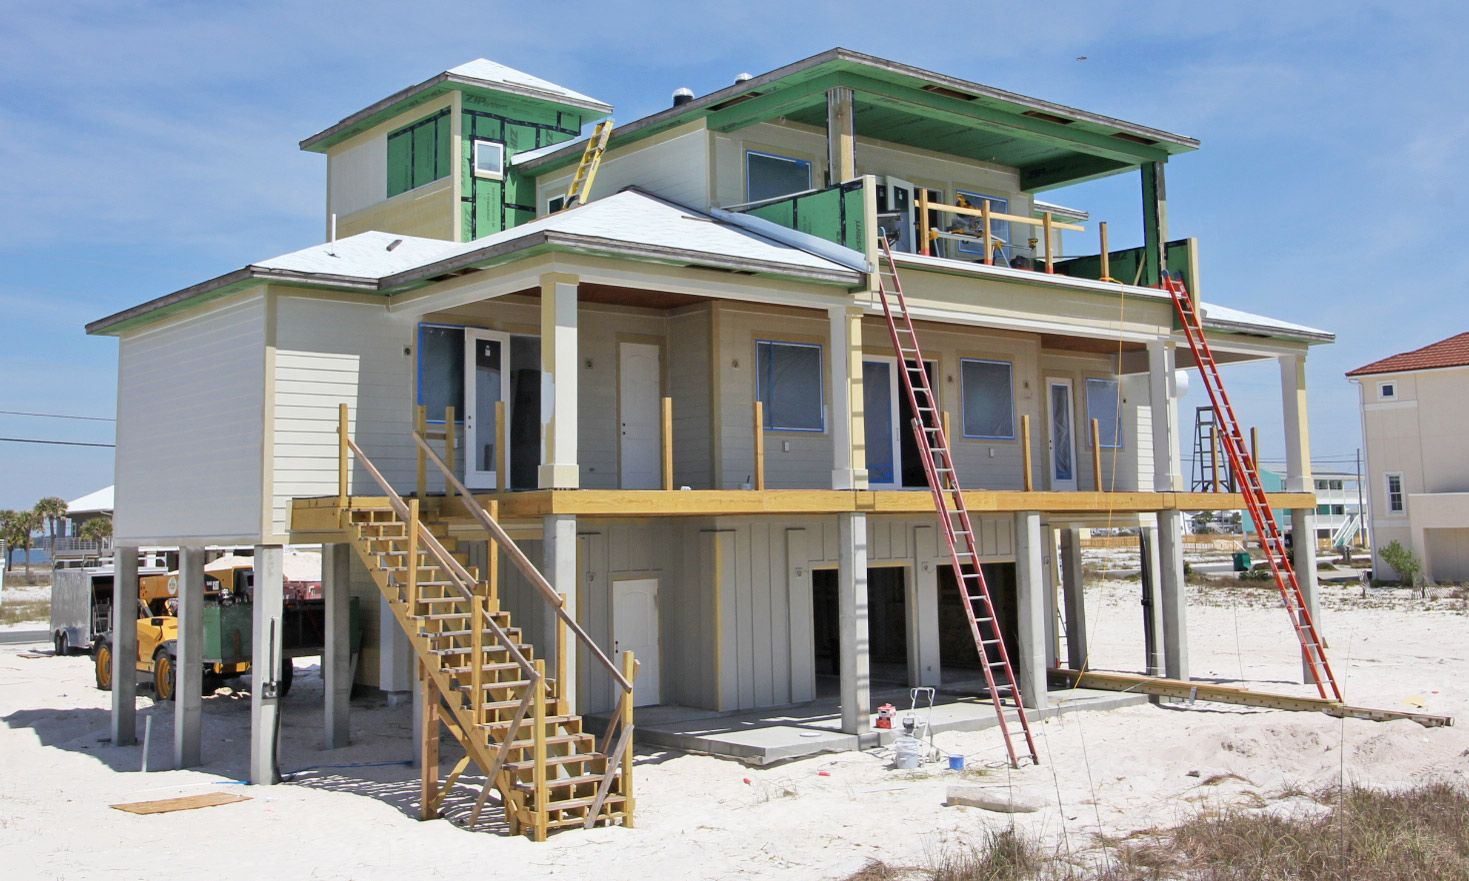 Burchard coastal transitional style piling home on Navarre BeacB